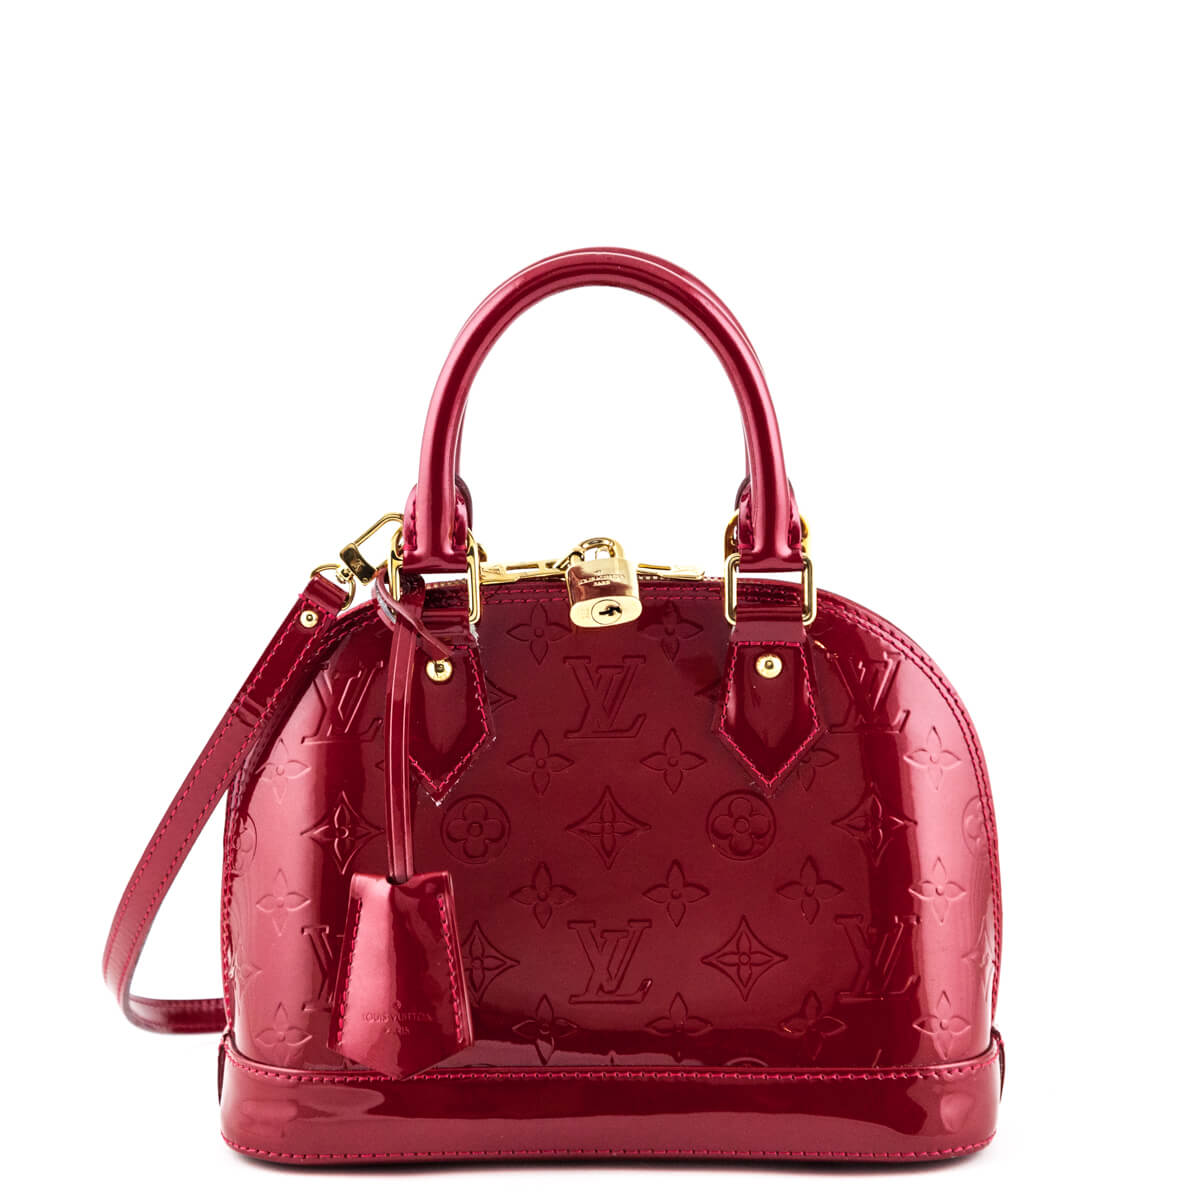 8c0c41a58a23 Louis Vuitton Cerise Empreinte Vernis Alma BB - LOVE that BAG - Preowned  Authentic Designer Handbags ...